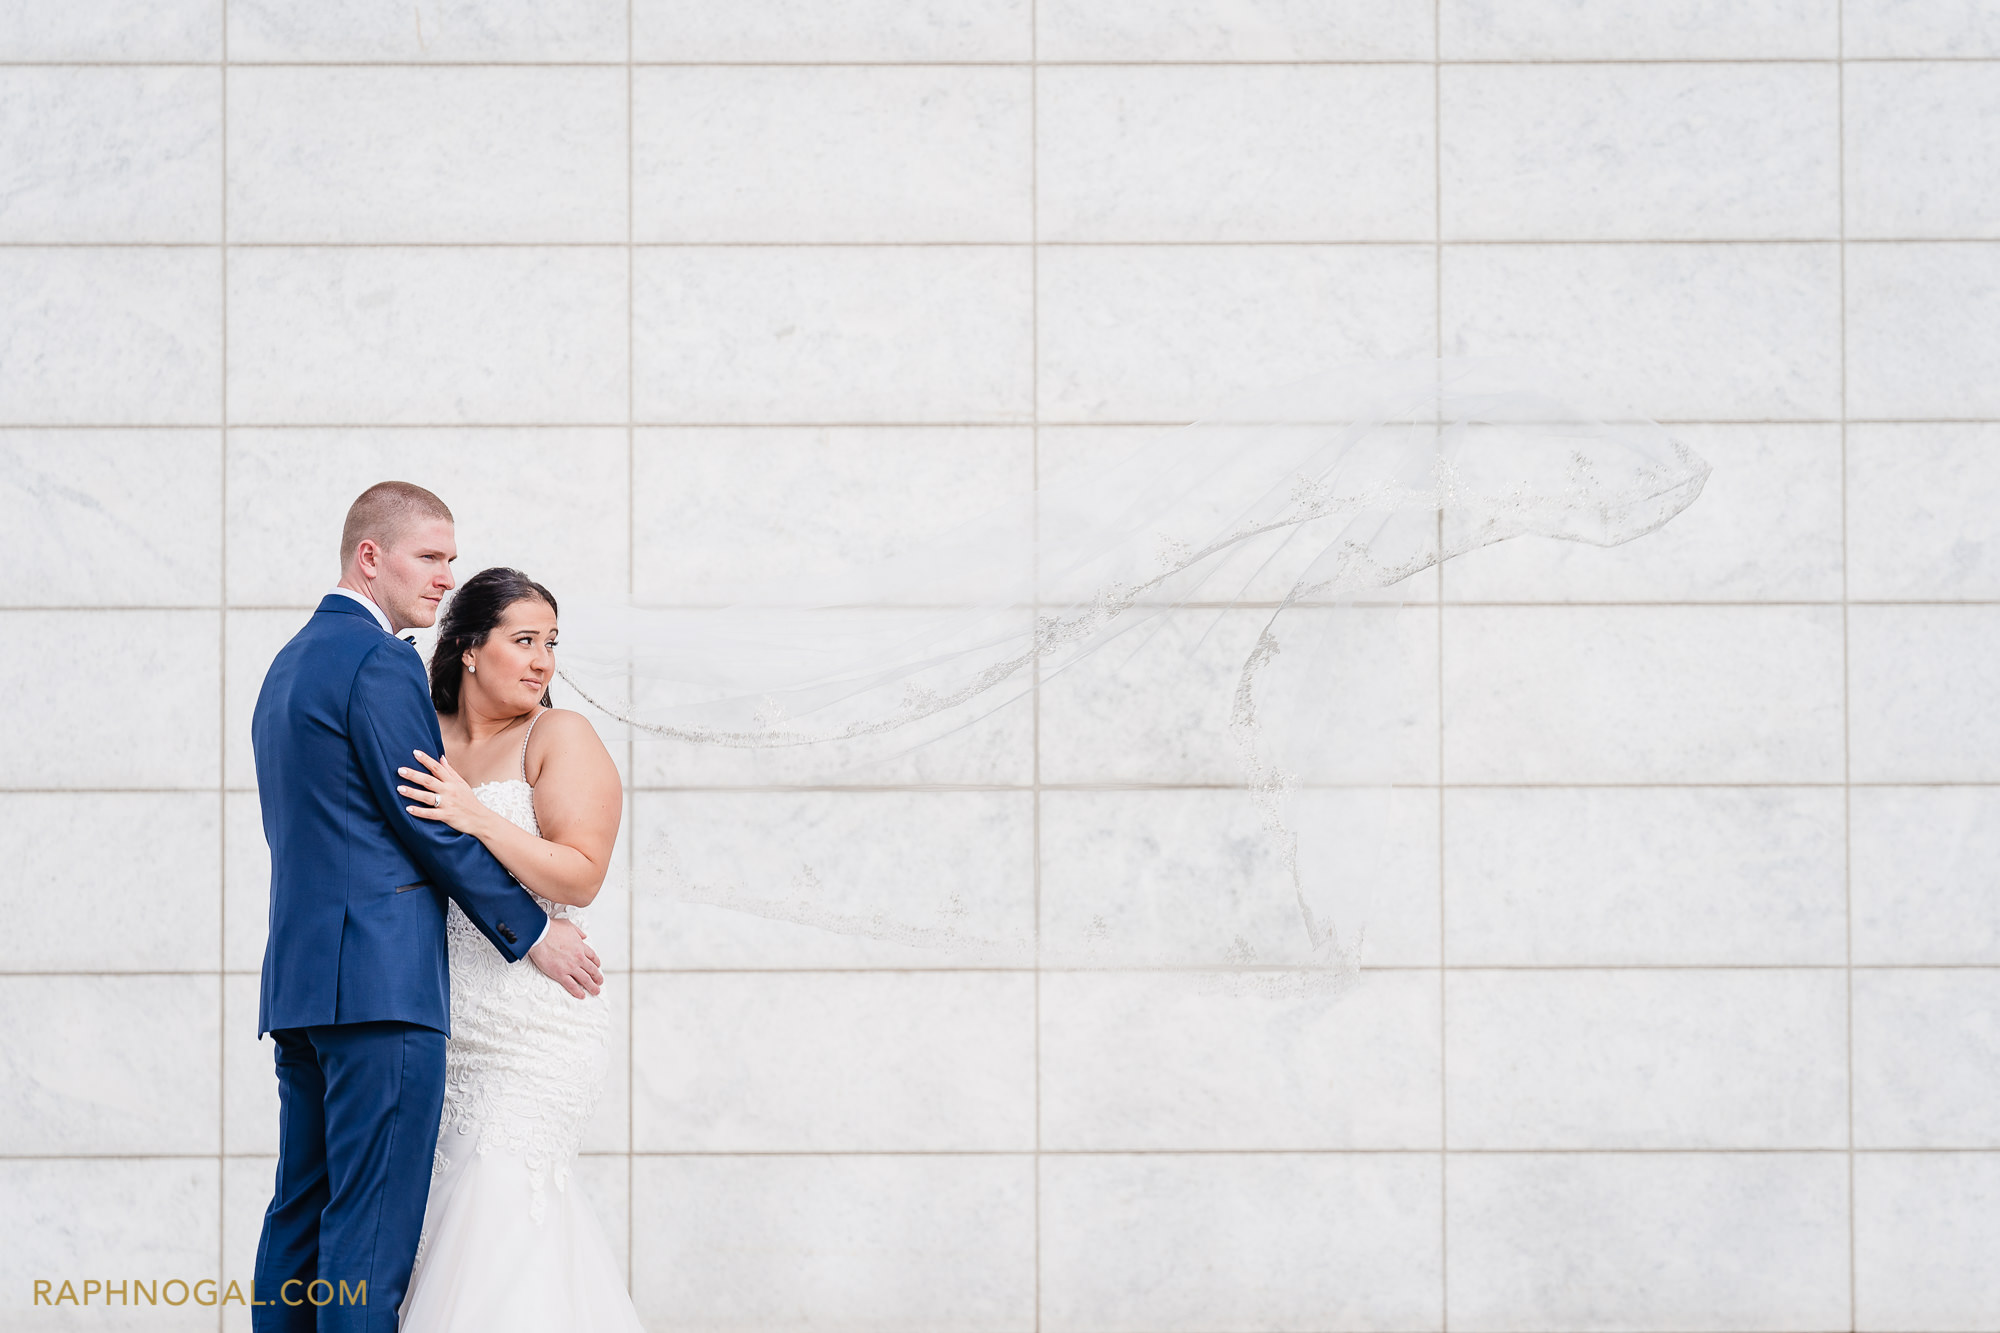 Bride and Groom at Aga Khan Museum and veil flies in the wind